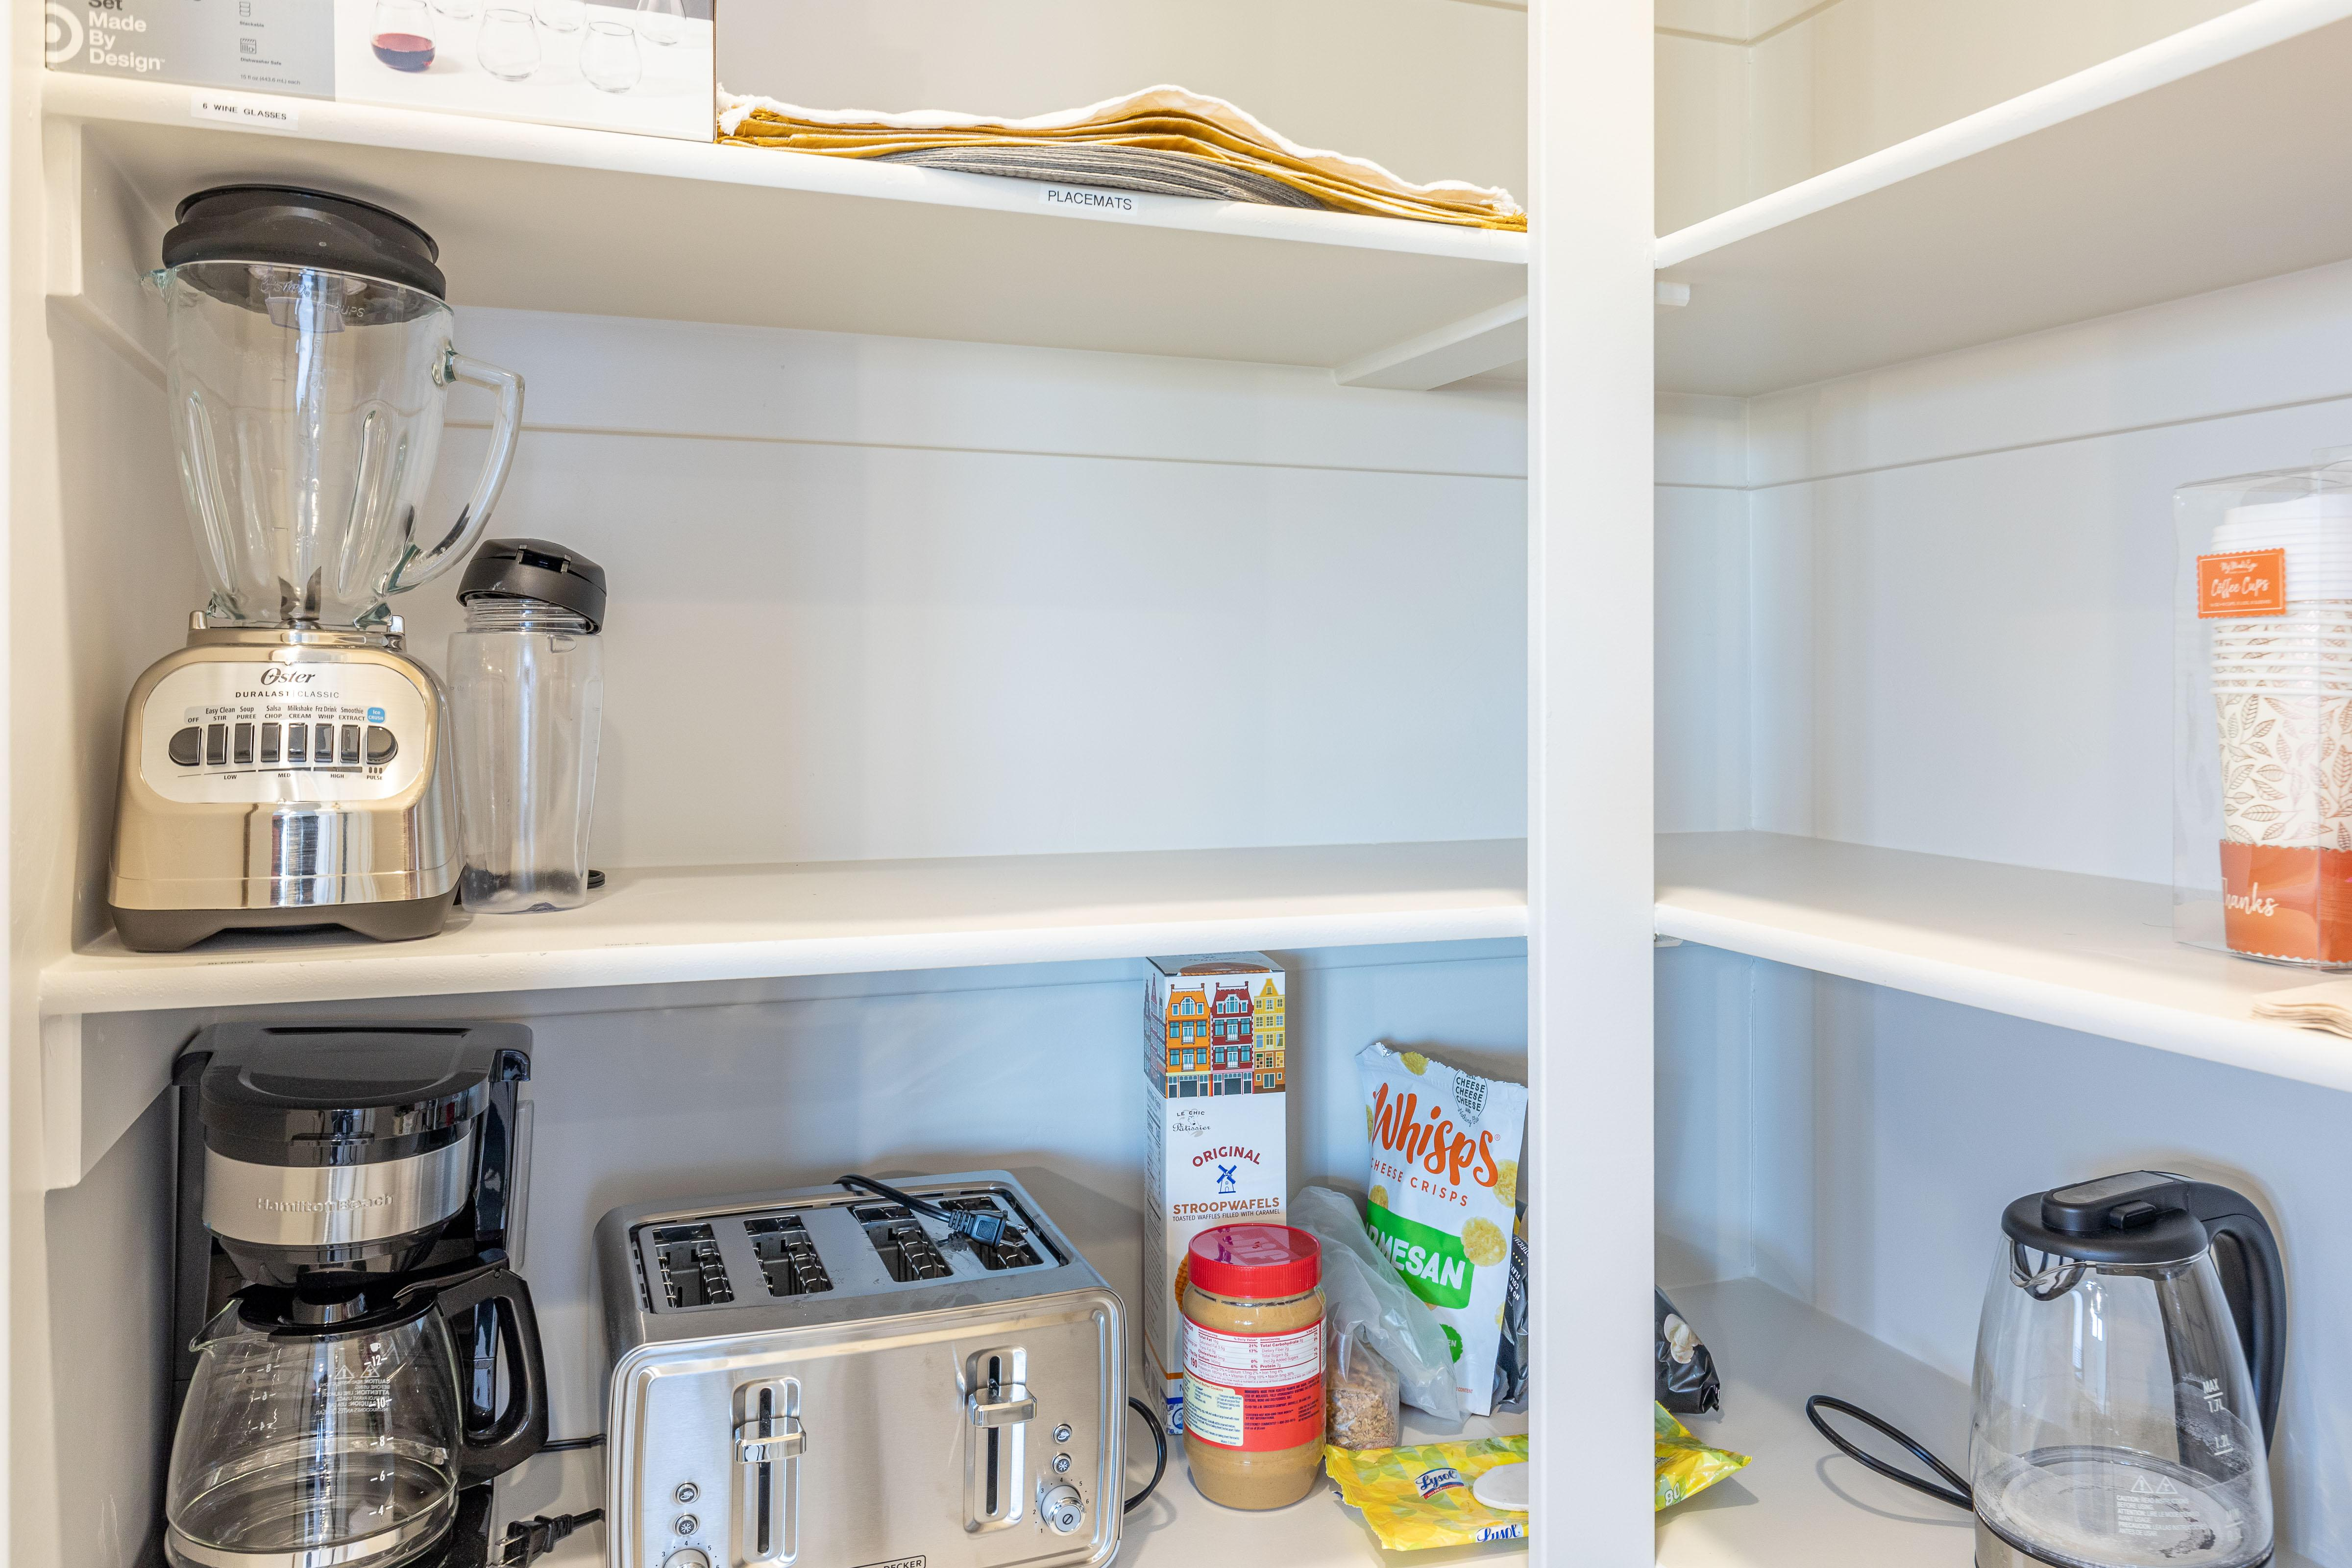 The pantry shows the appliances available for your use.